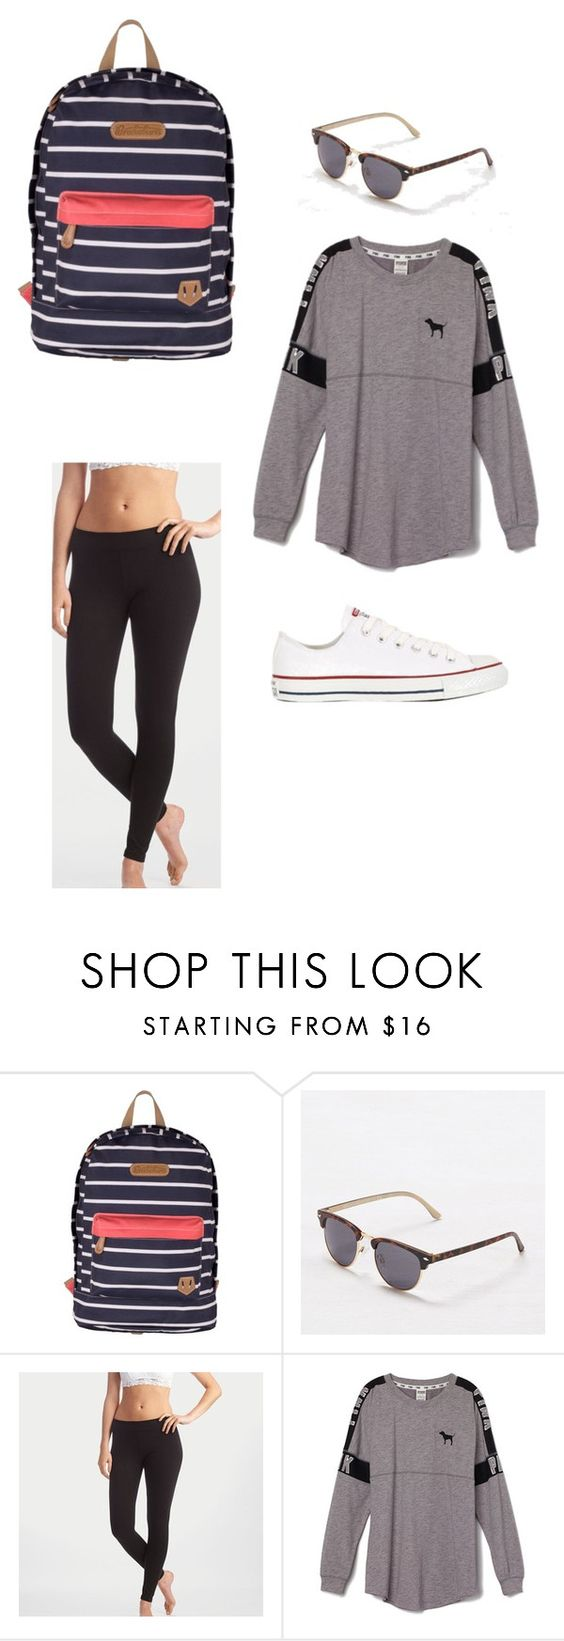 """""""Plain spring break"""" by katelyn-rose3088 ❤ liked on Polyvore featuring Brakeburn, American Eagle Outfitters, Aerie, Victoria's Secret PINK, Converse, women's clothing, women, female, woman and misses"""